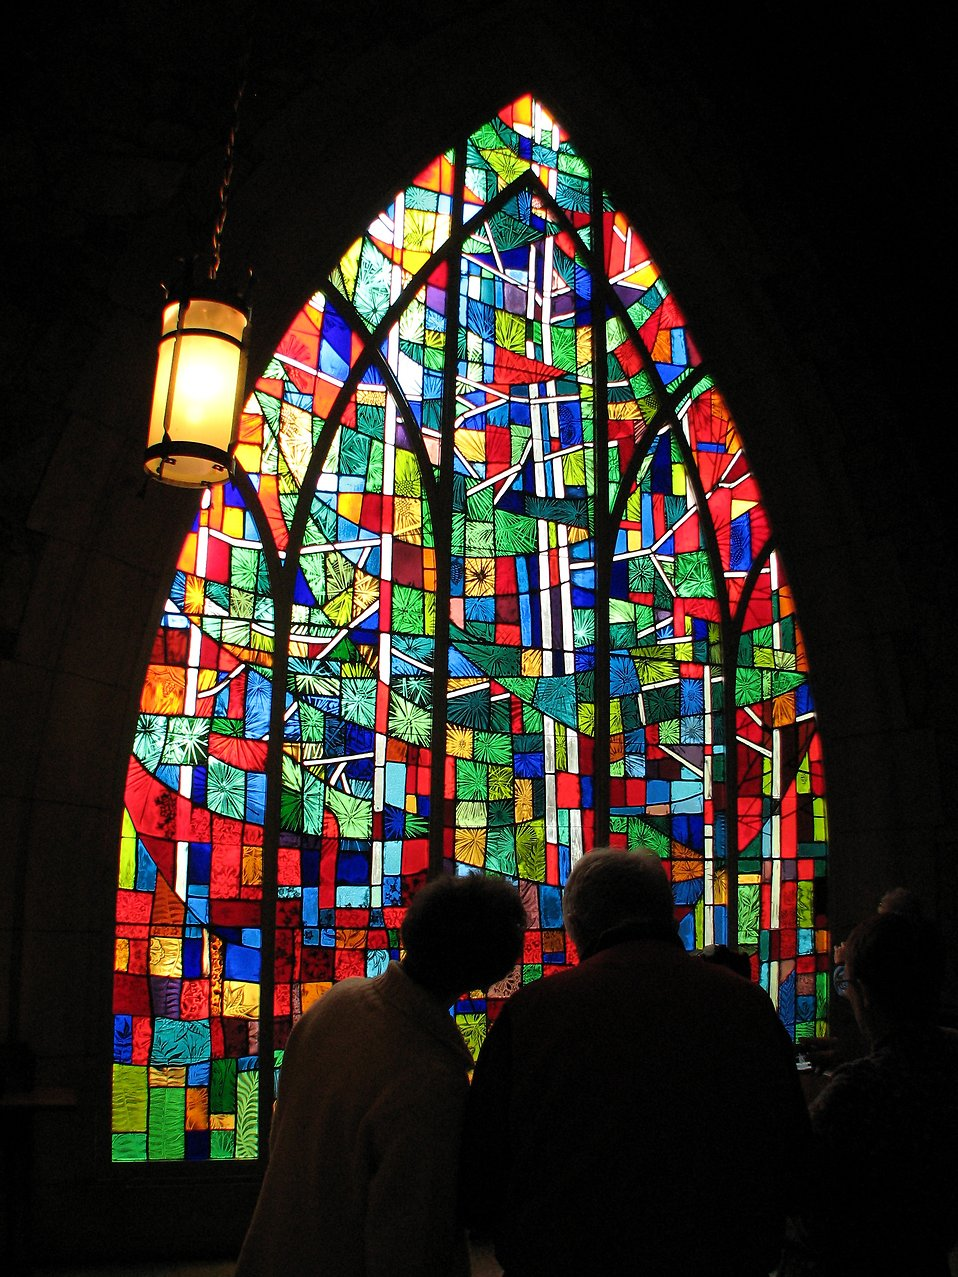 A couple standing in front of a stained glass window : Free Stock Photo